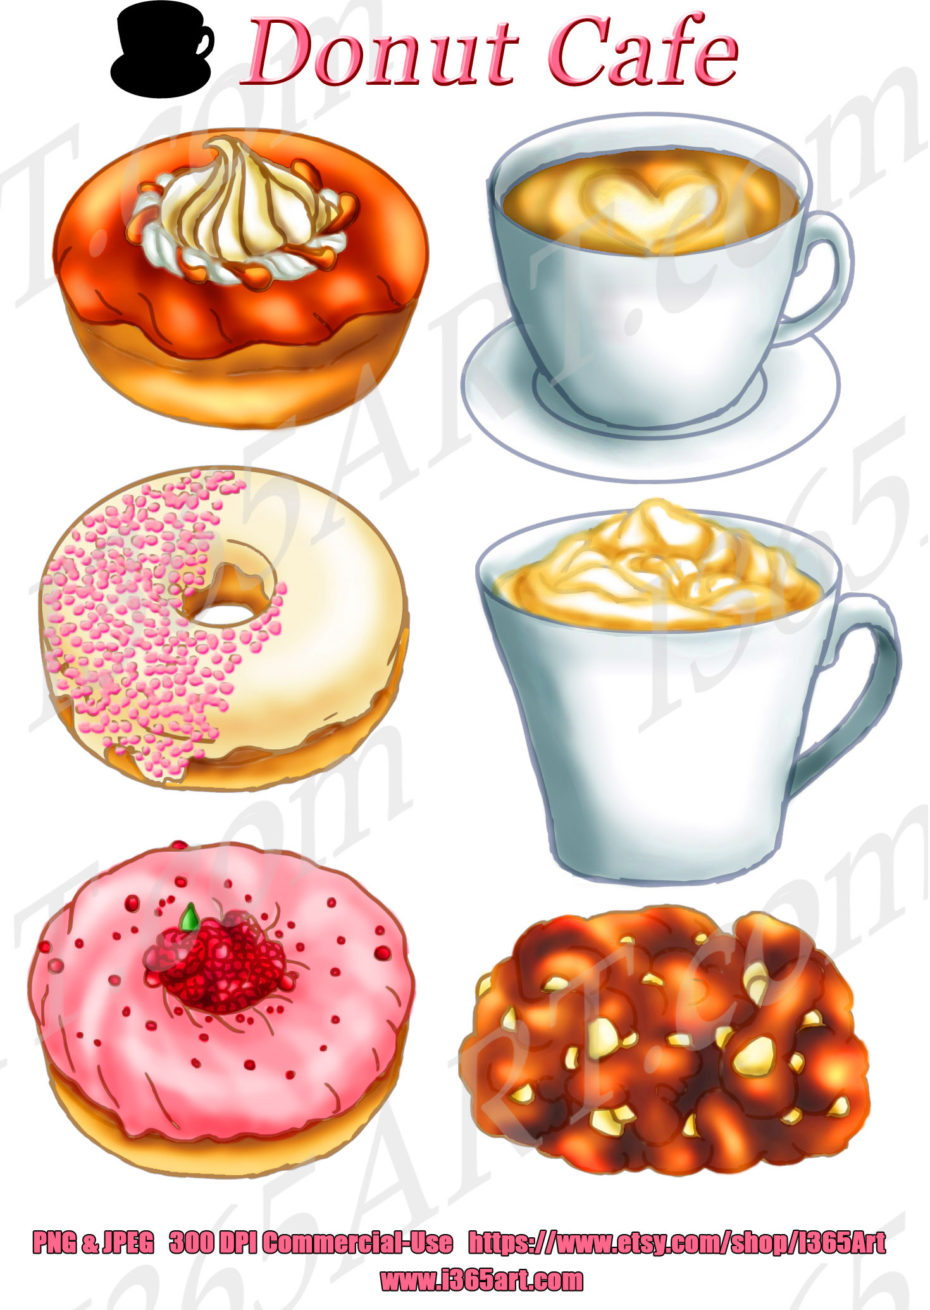 gourmet-donut-preview